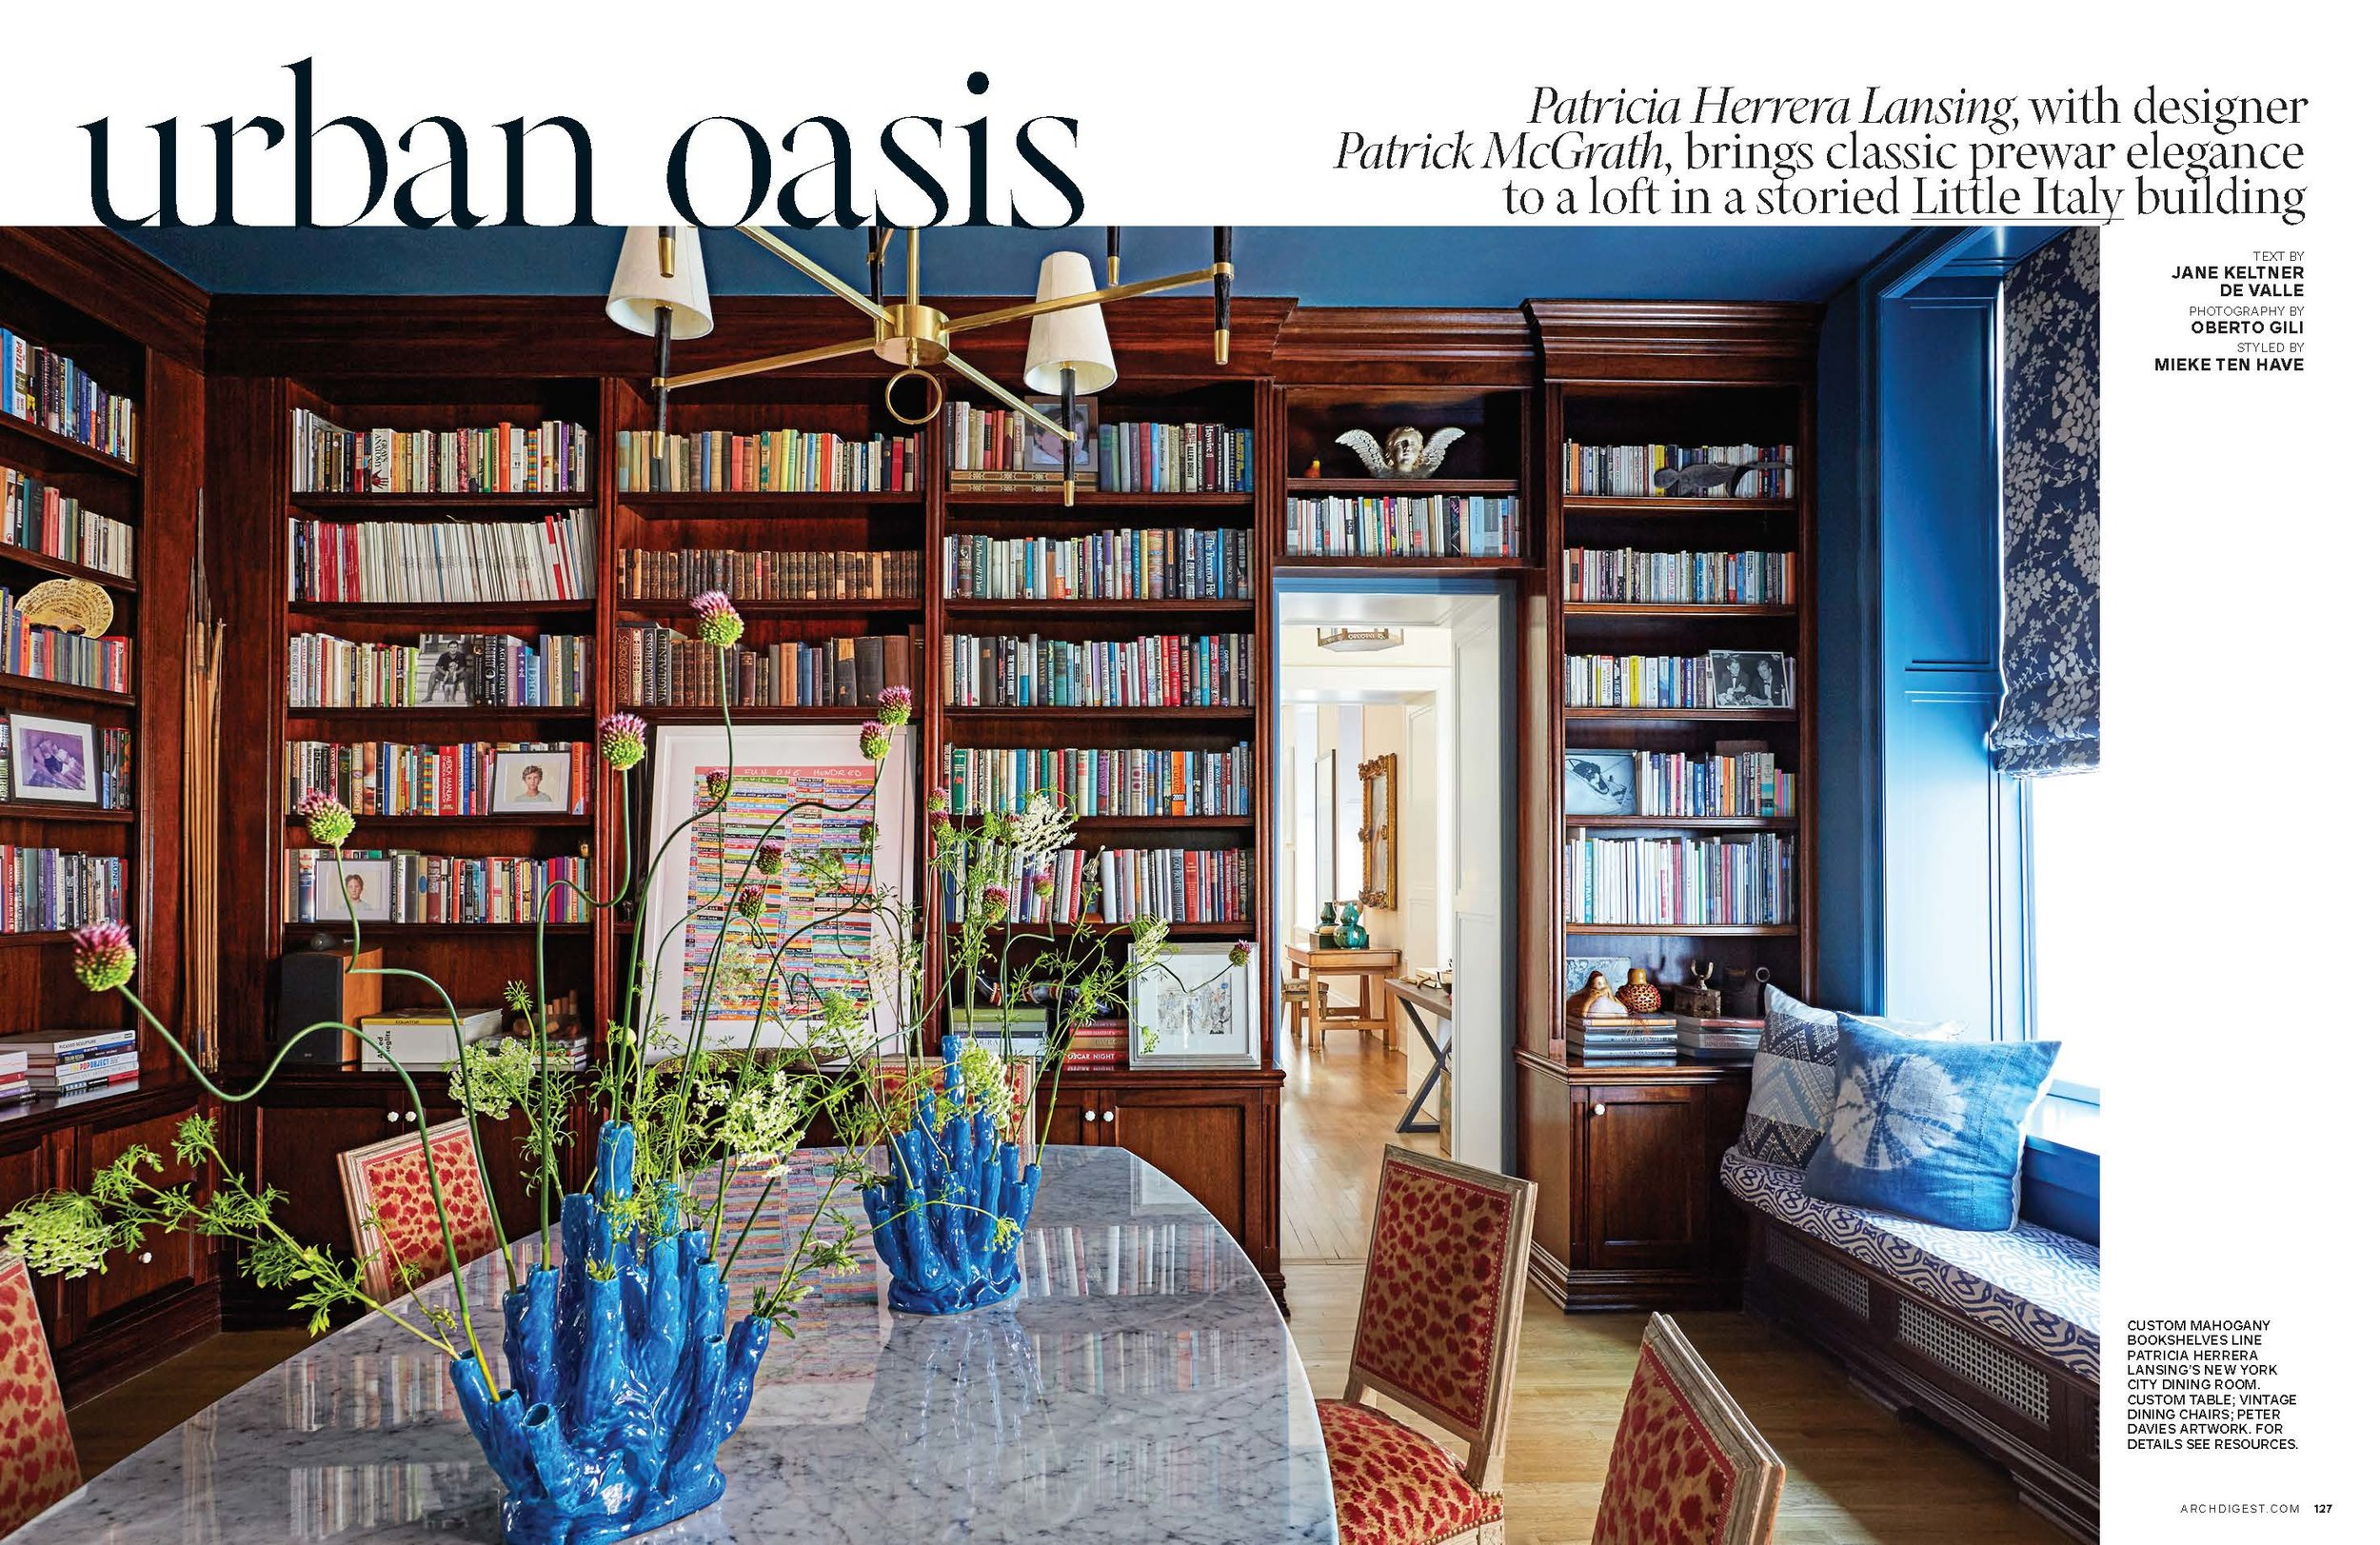 ARCHITECTURAL DIGEST, MAY 2019